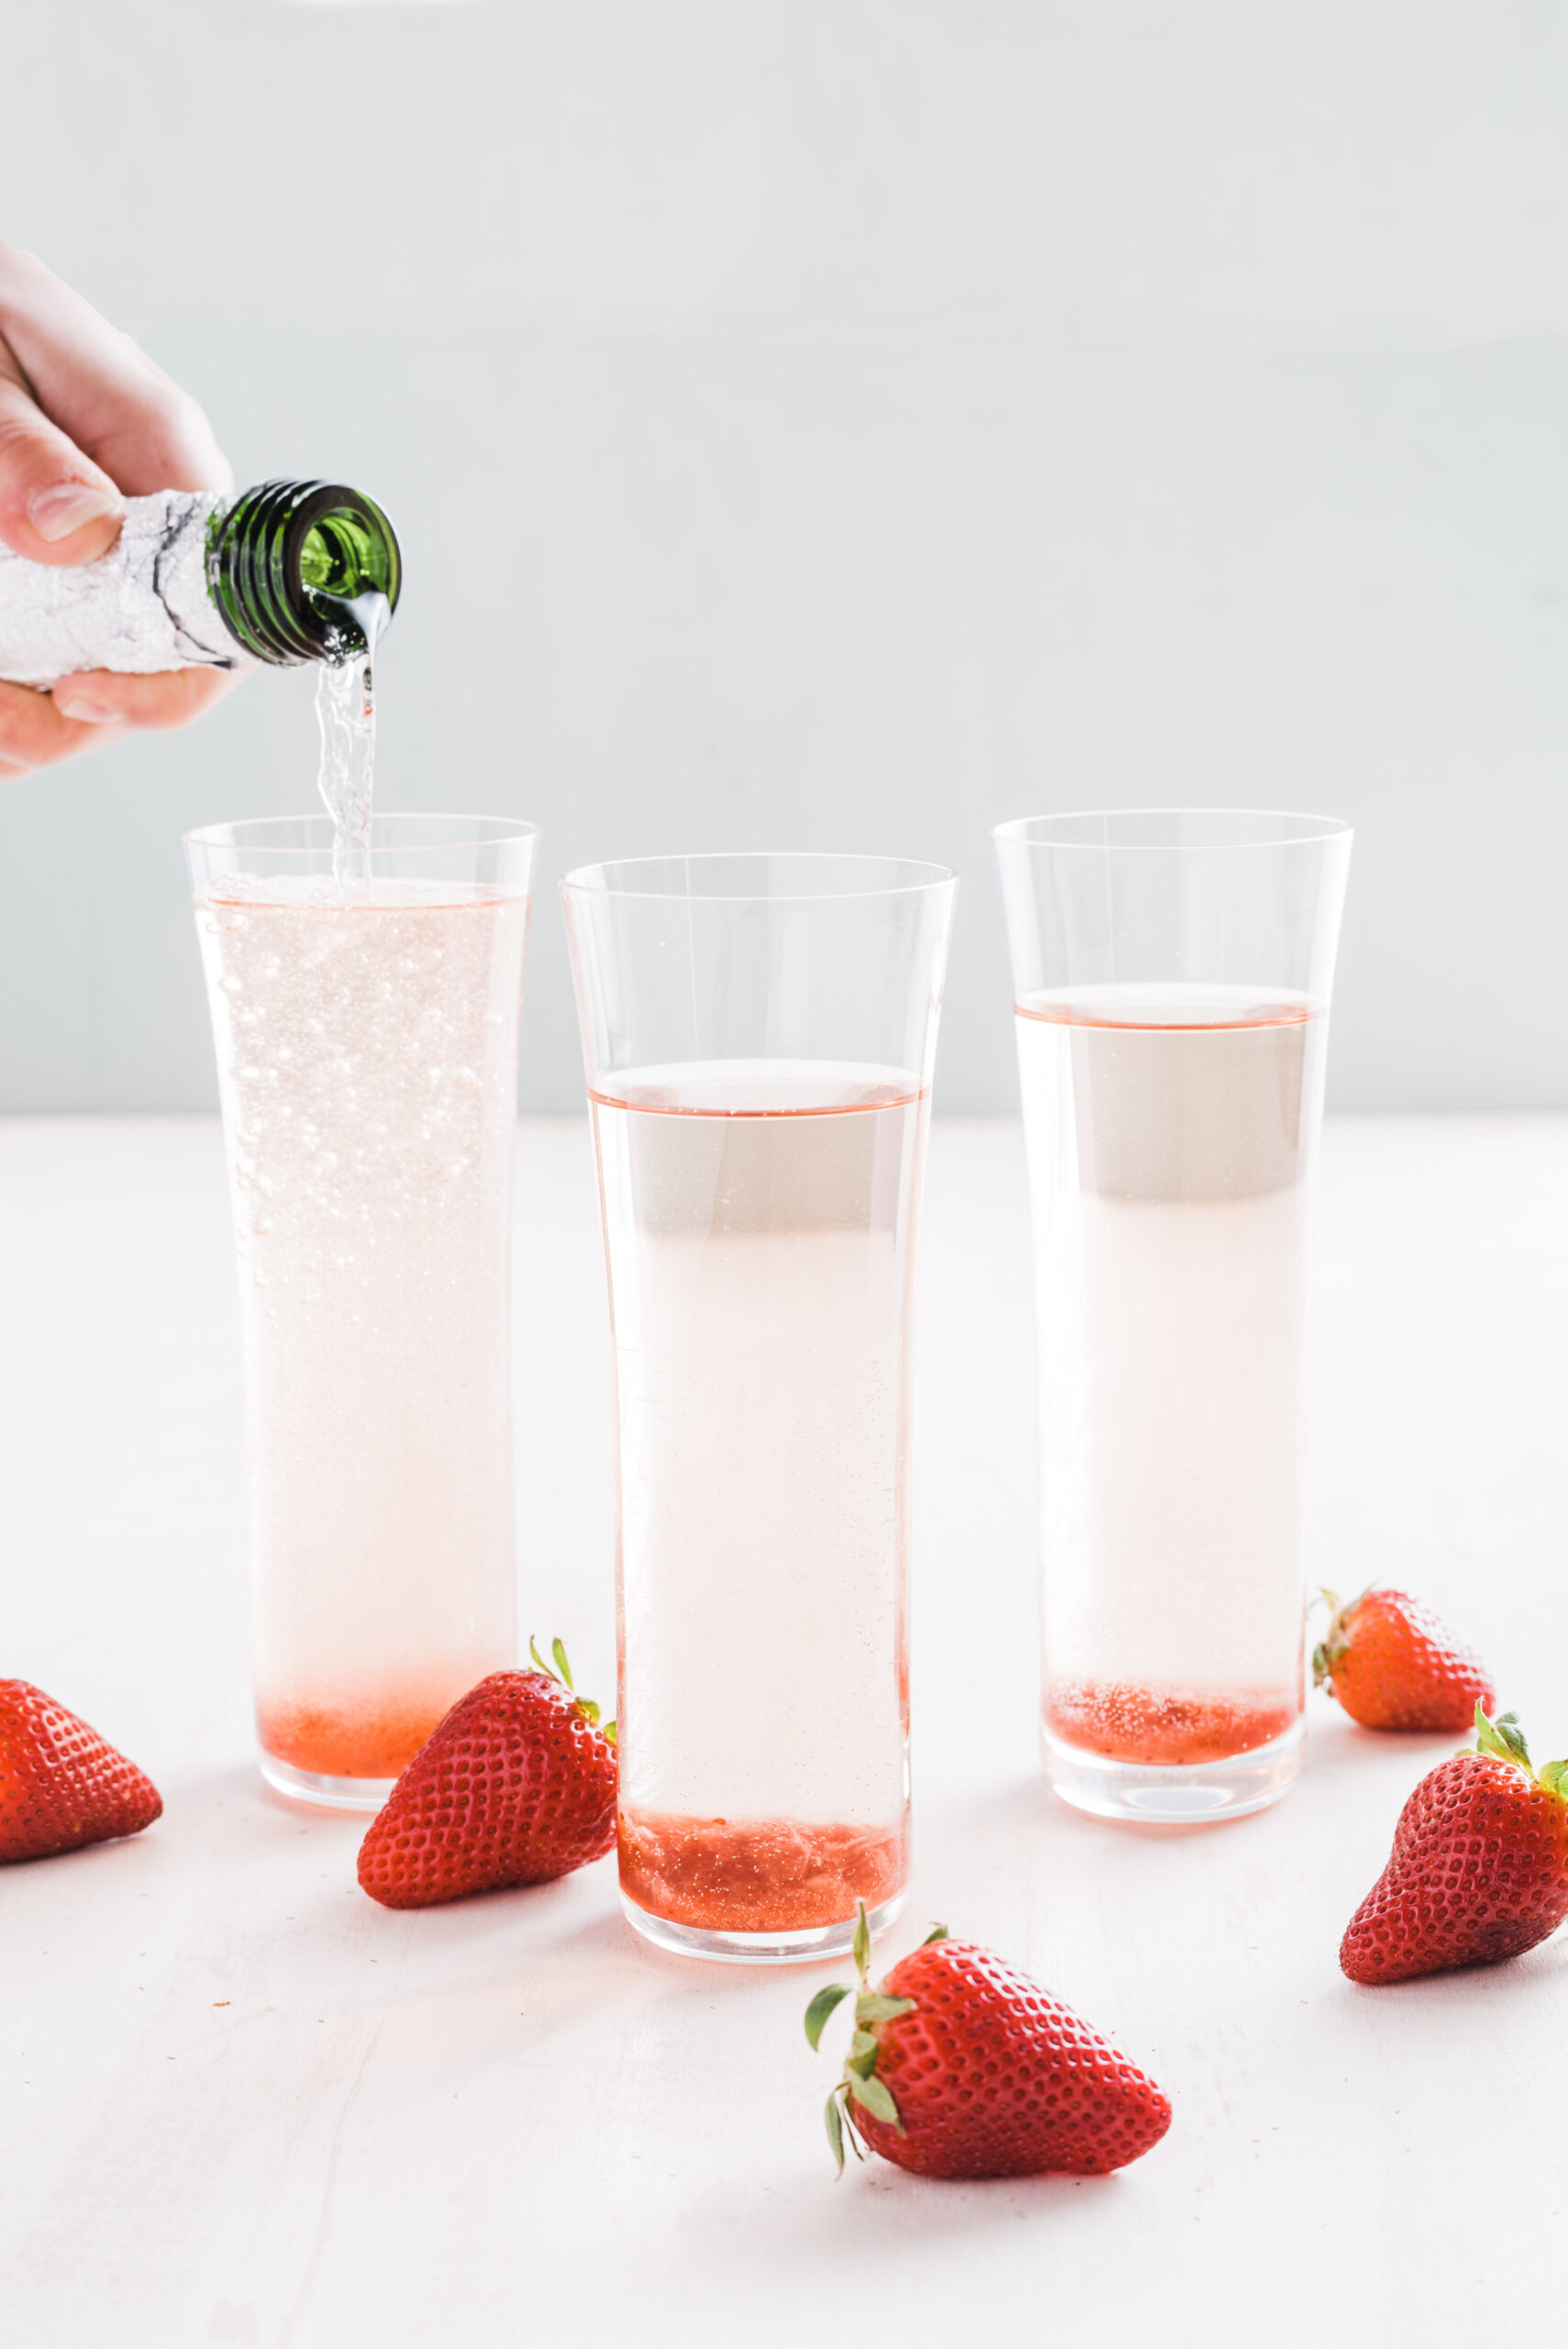 cocktail in tall flute glasses with strawberry slices on top.